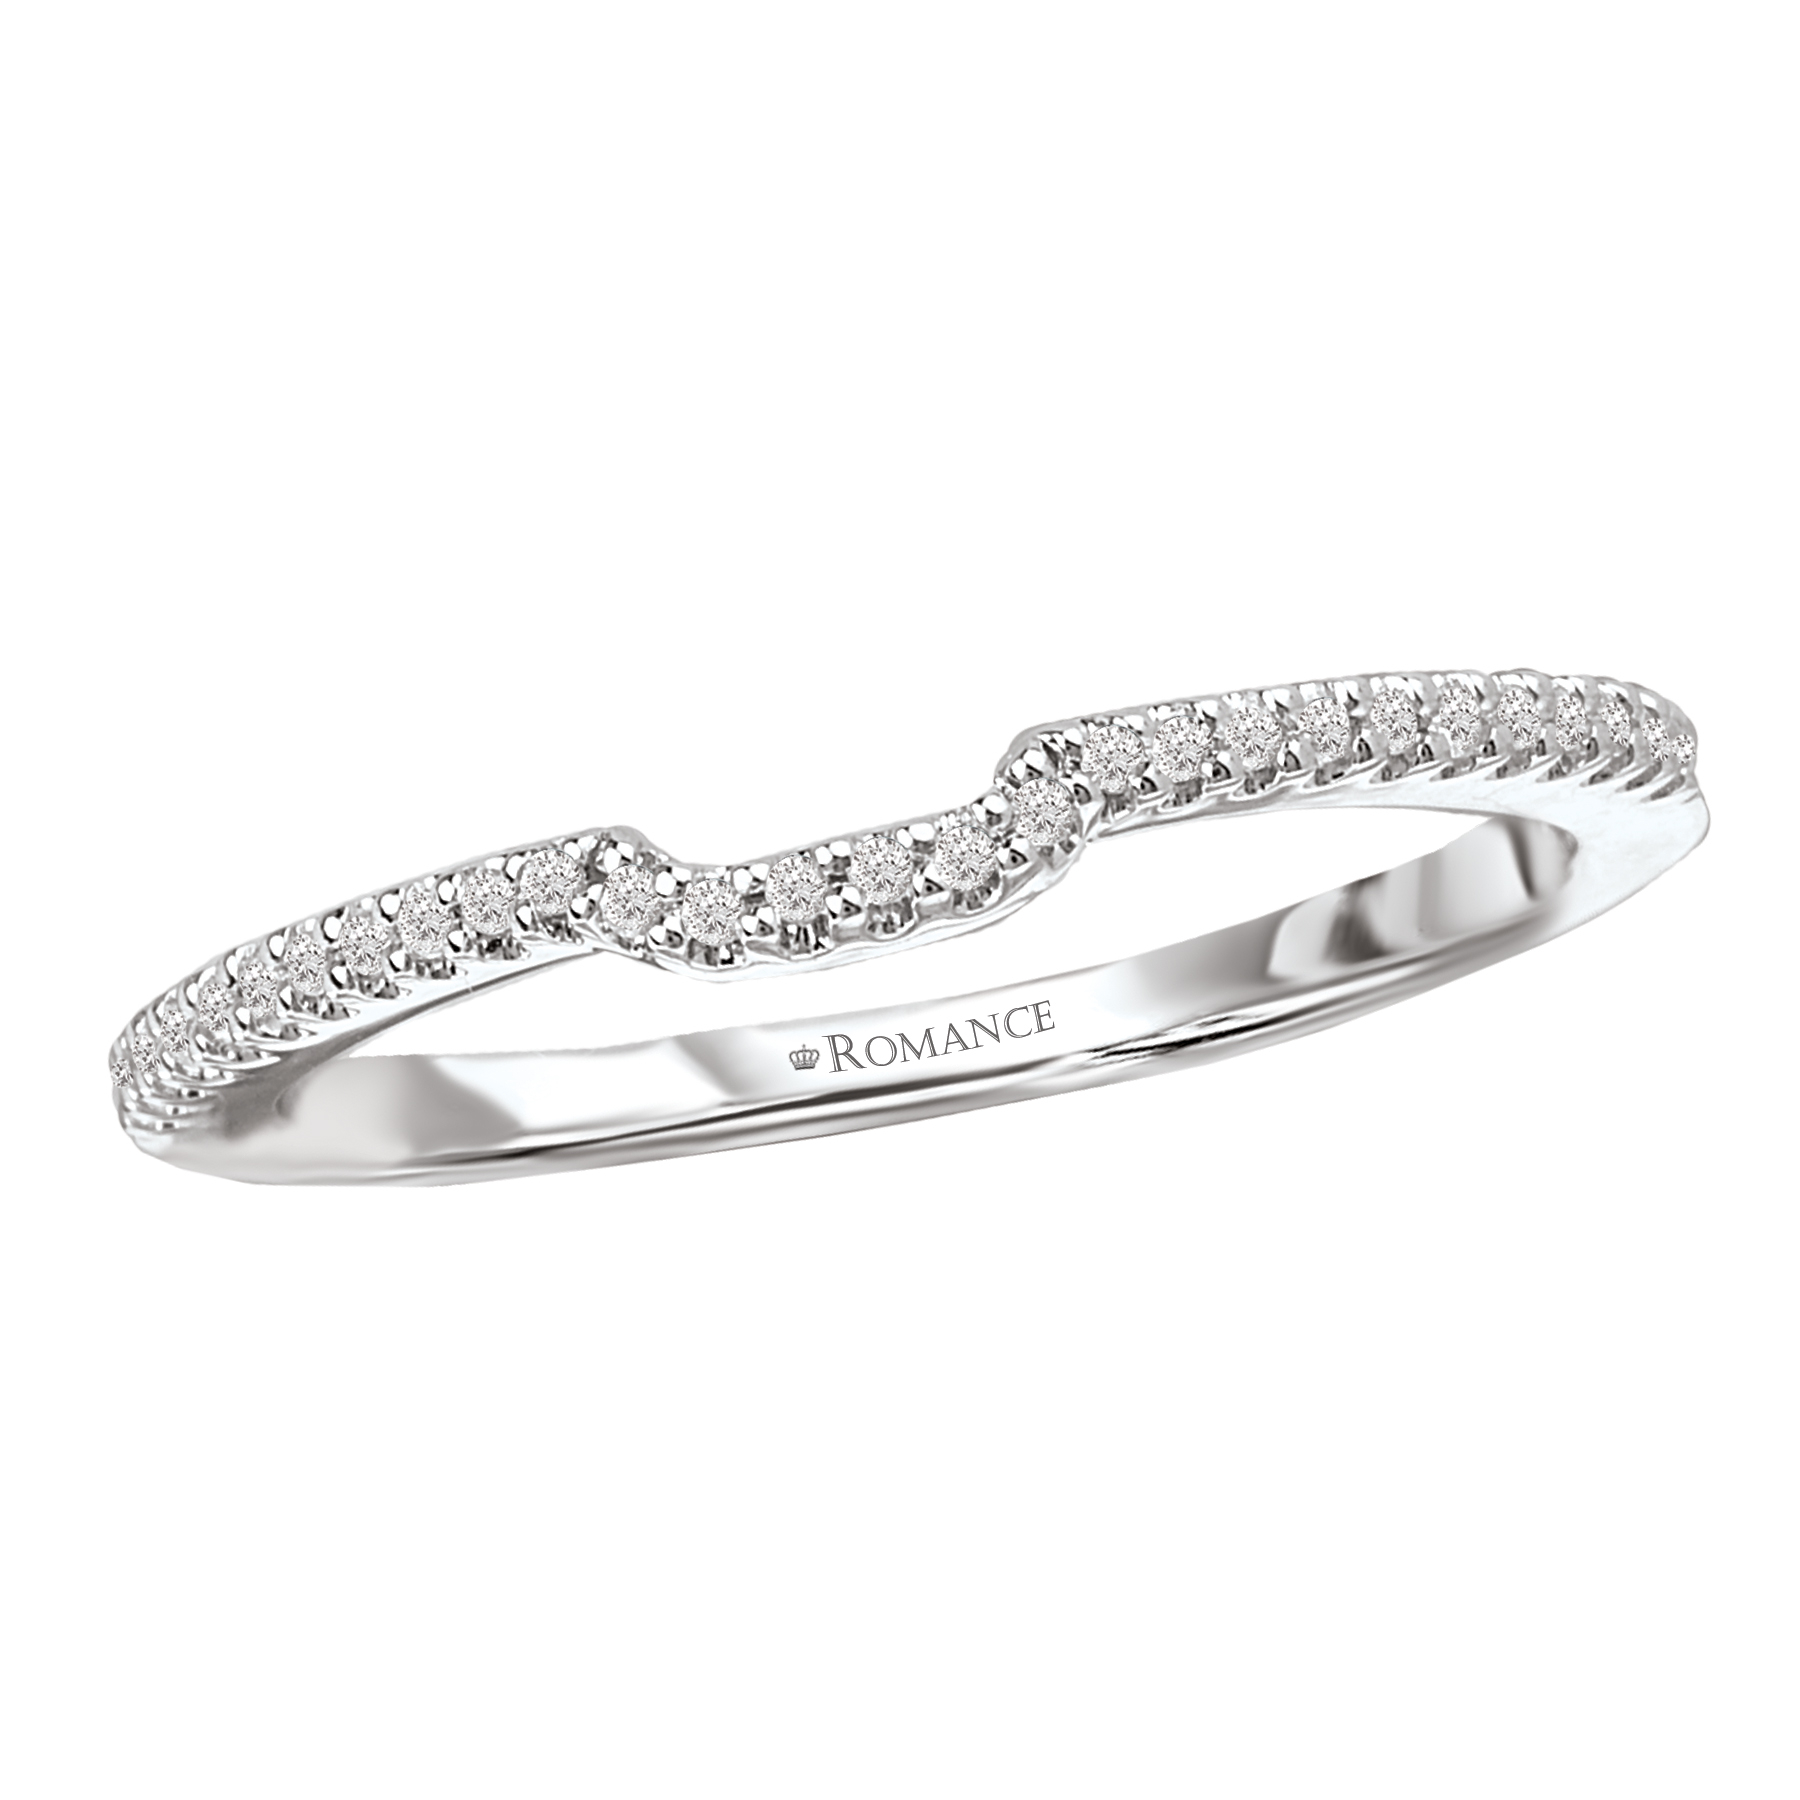 Romance Wedding Bands 117426-150W product image